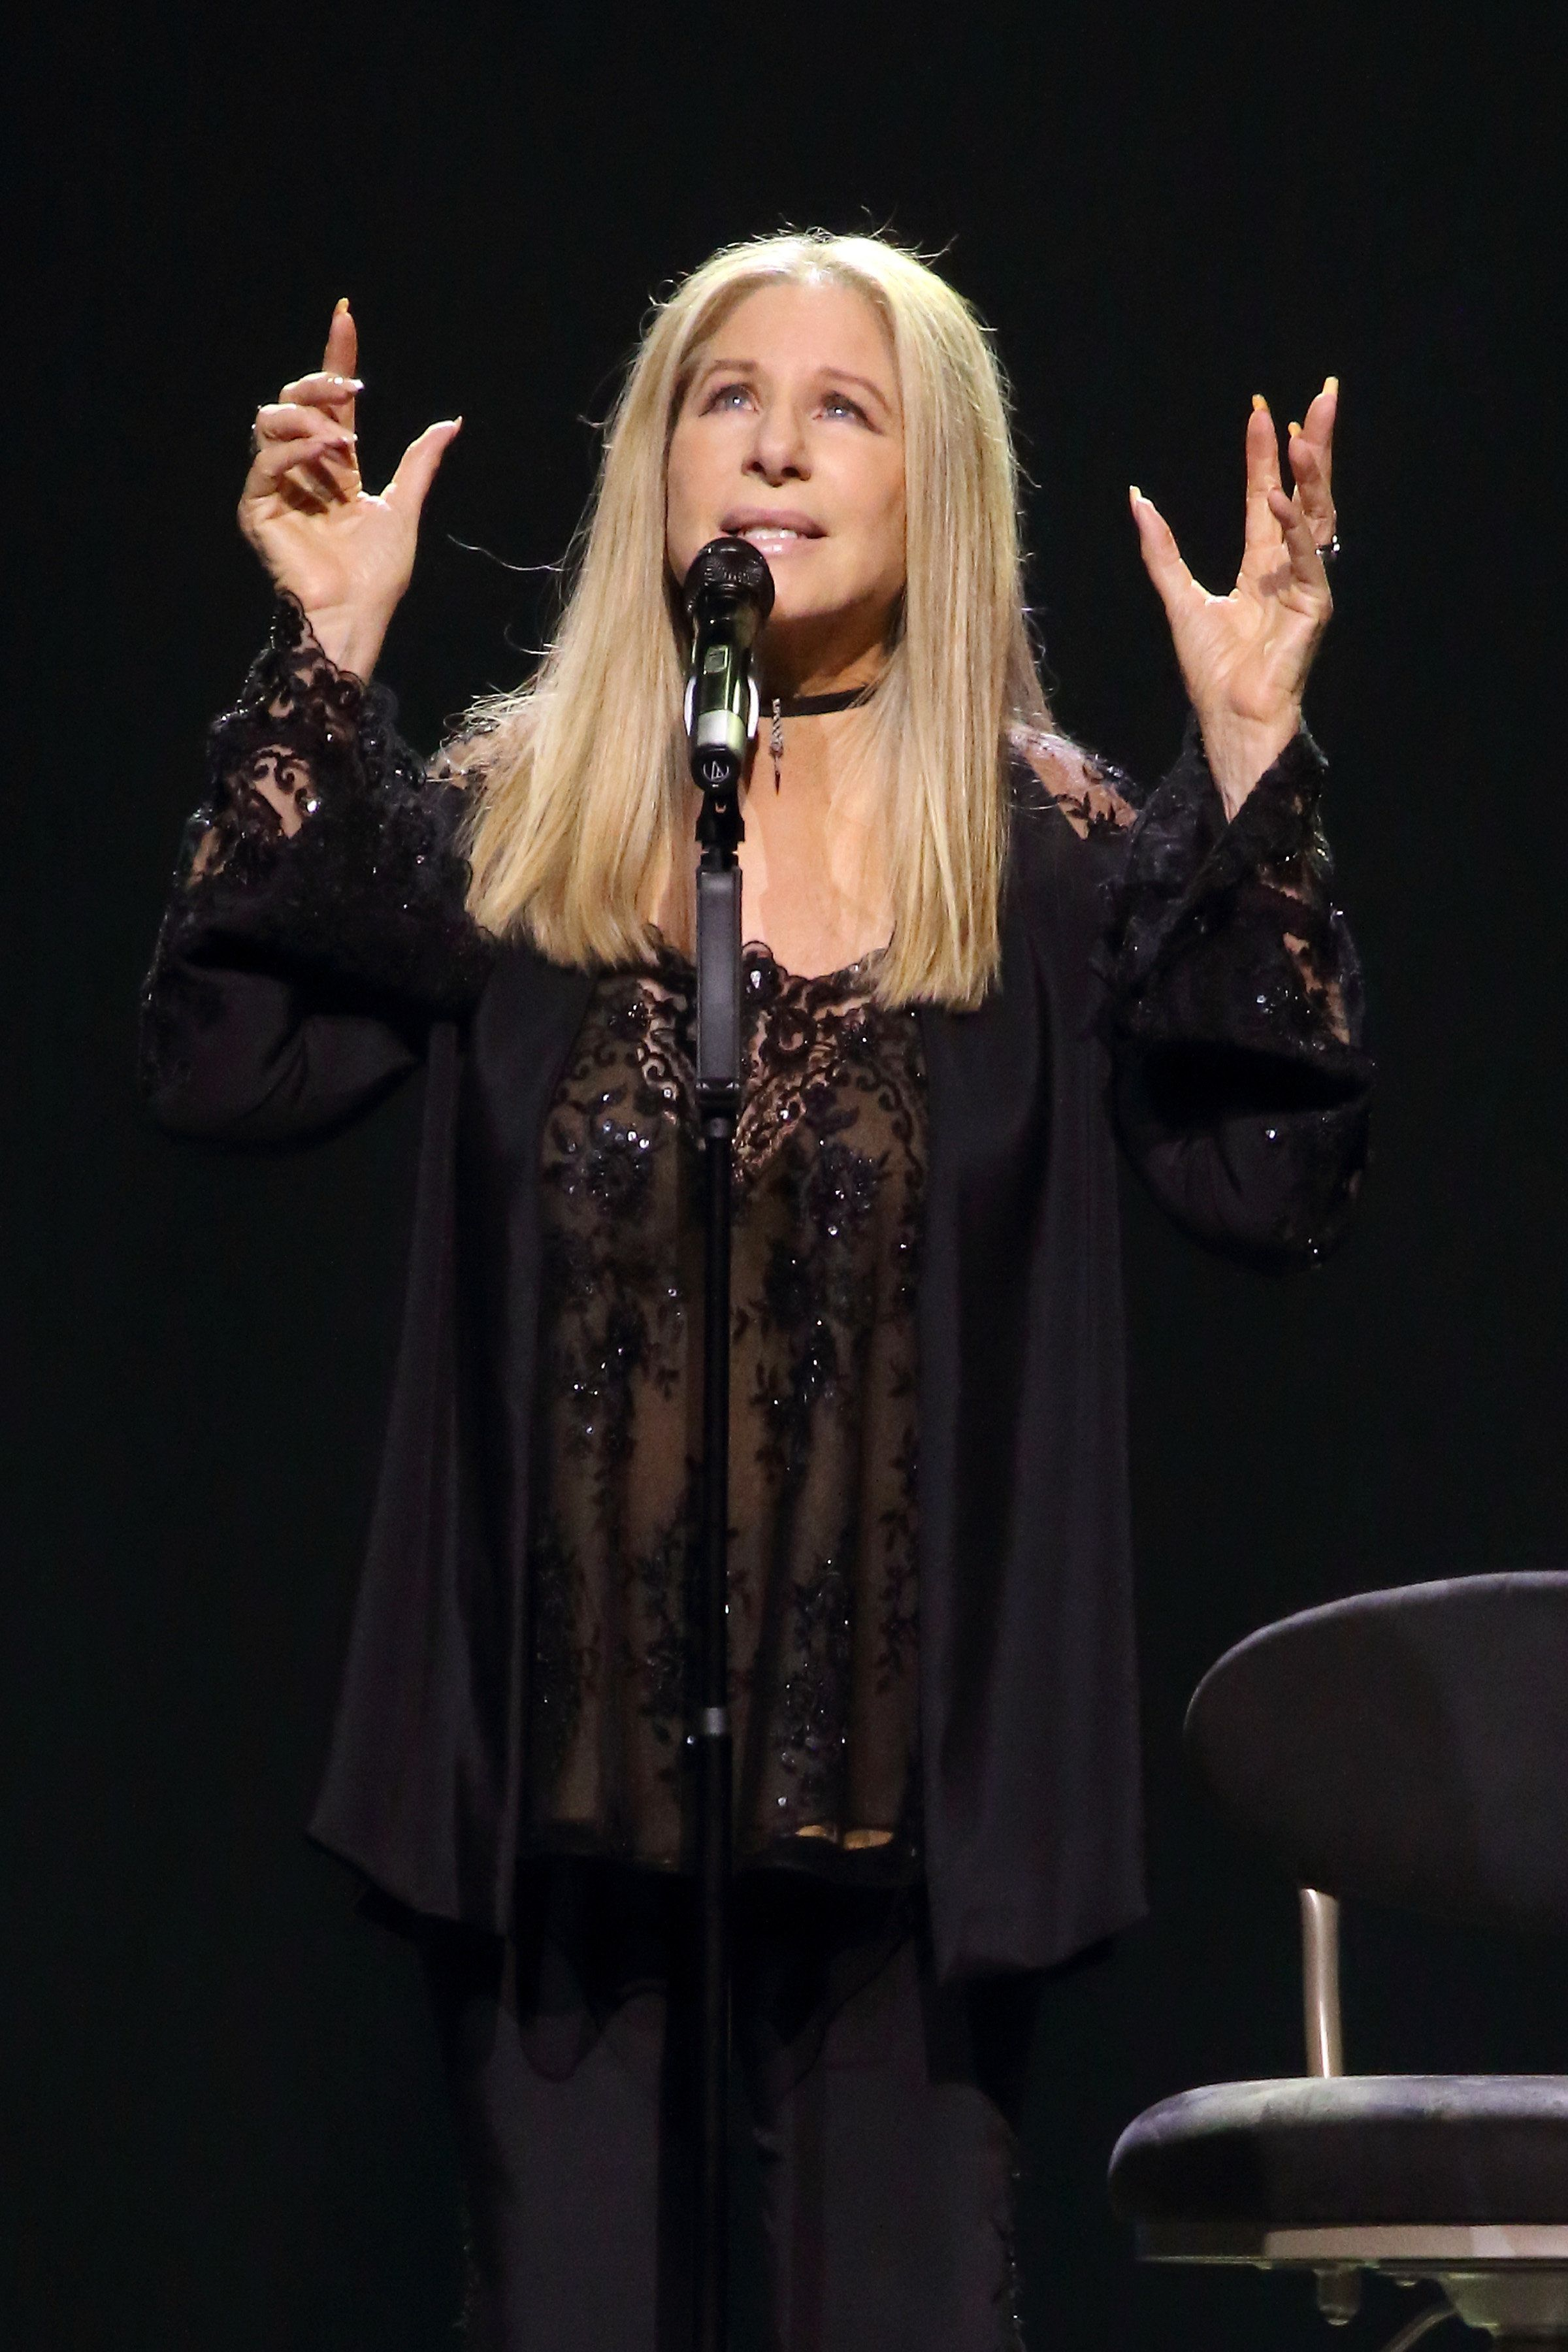 WASHINGTON, DC - AUGUST 18:  Barbra Streisand performs onstage during her 'Barbra - The Music... The Mem'ries... The Magic!' tour at Verizon Center on August 18, 2016 in Washington, DC.  (Photo by Paul Morigi/WireImage for BSB )